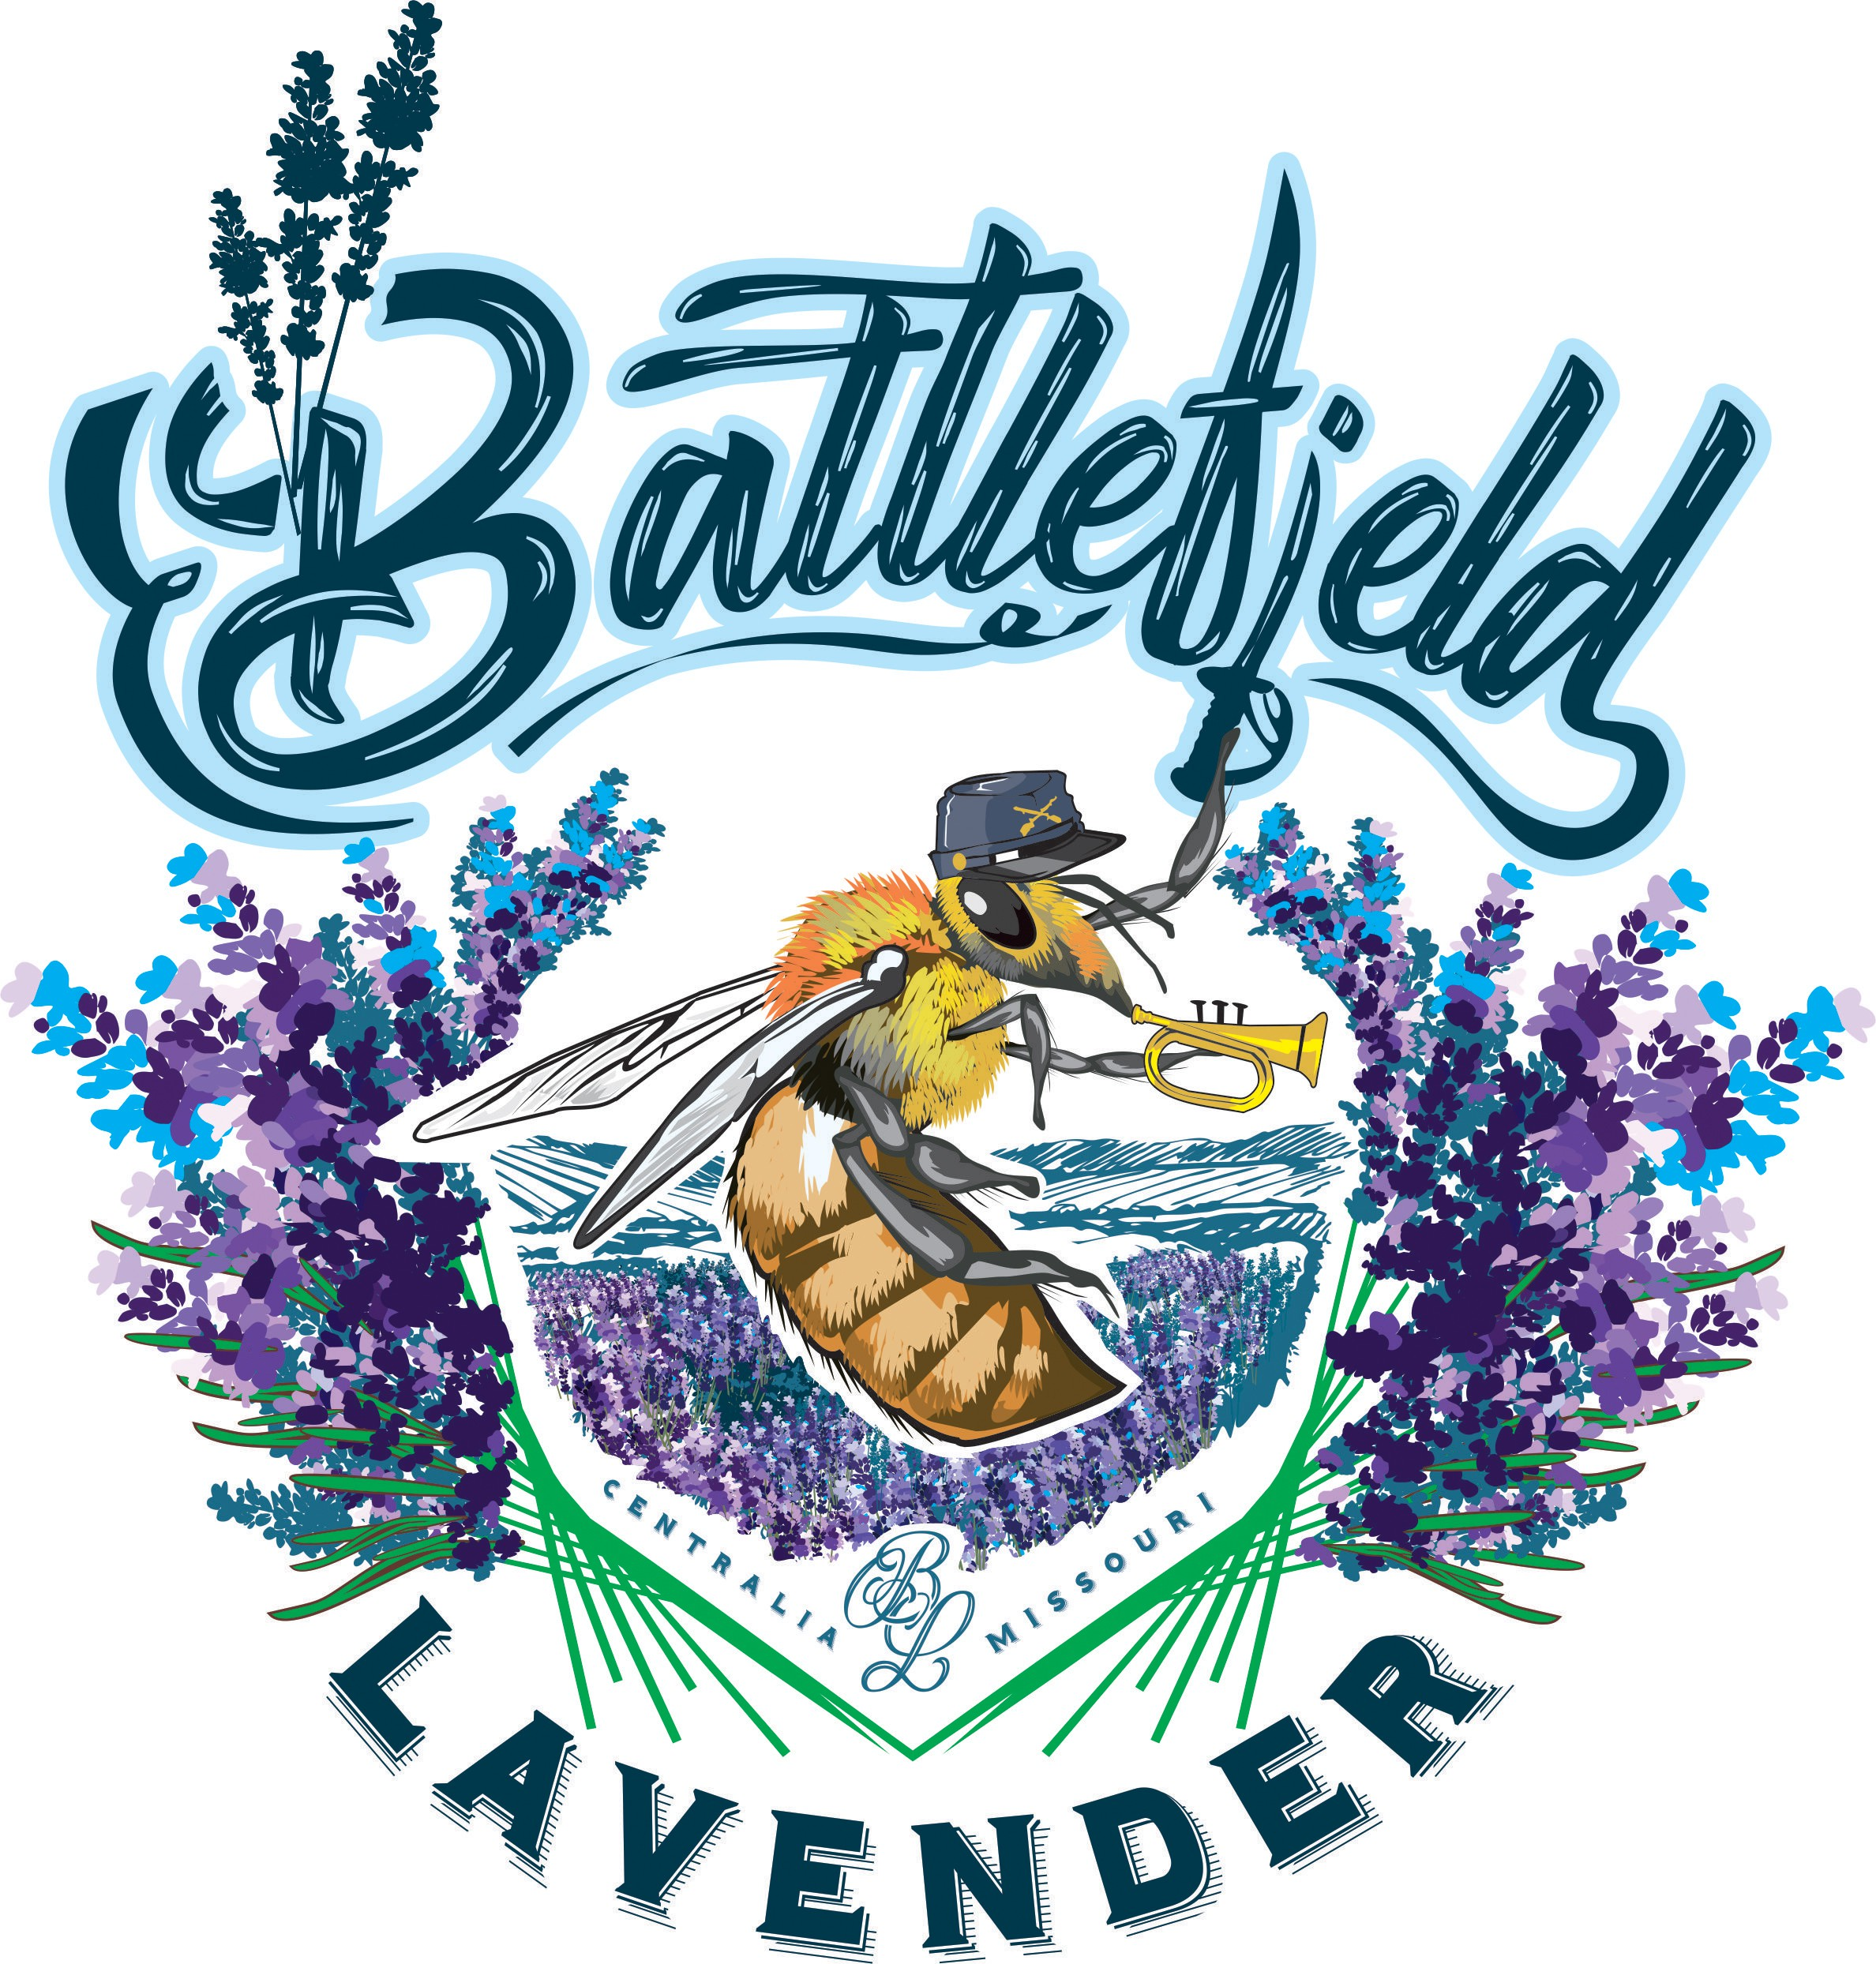 Logo Design for Battlefield Lavender - Combine history and beauty